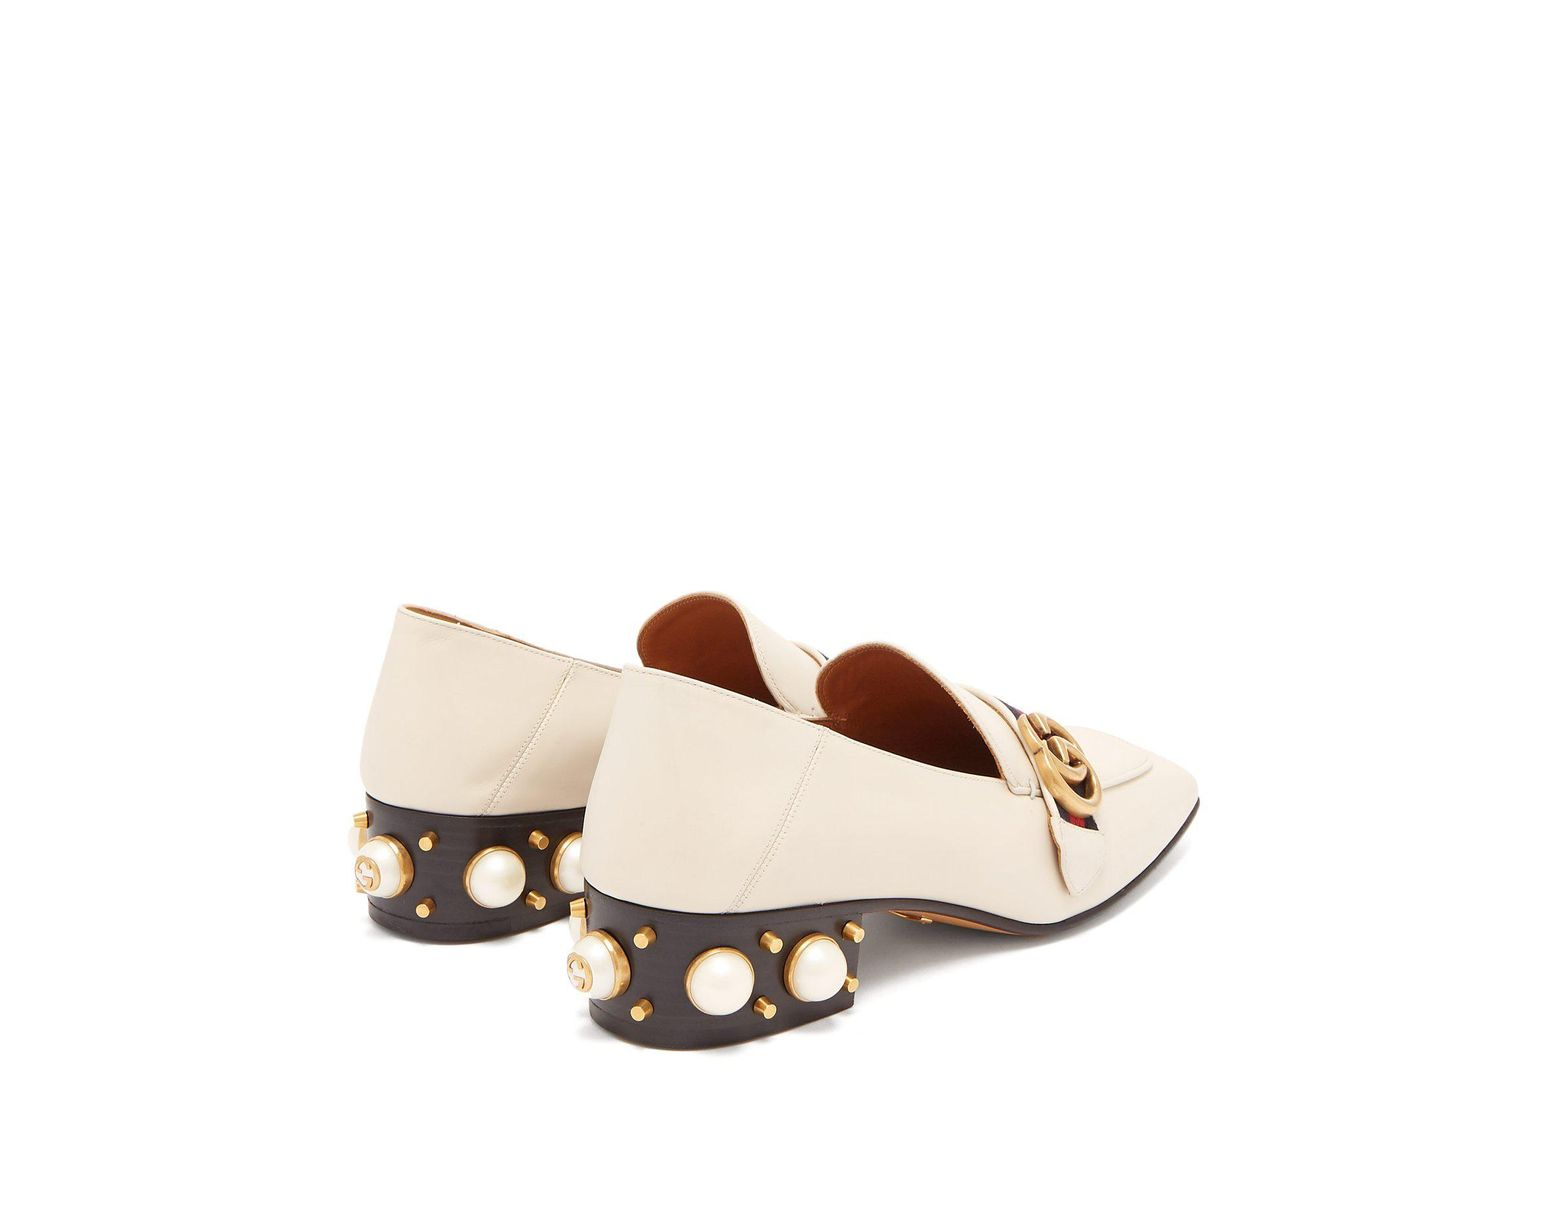 81afc4979 Gucci Peyton Pearl Embellished Leather Loafers in White - Lyst